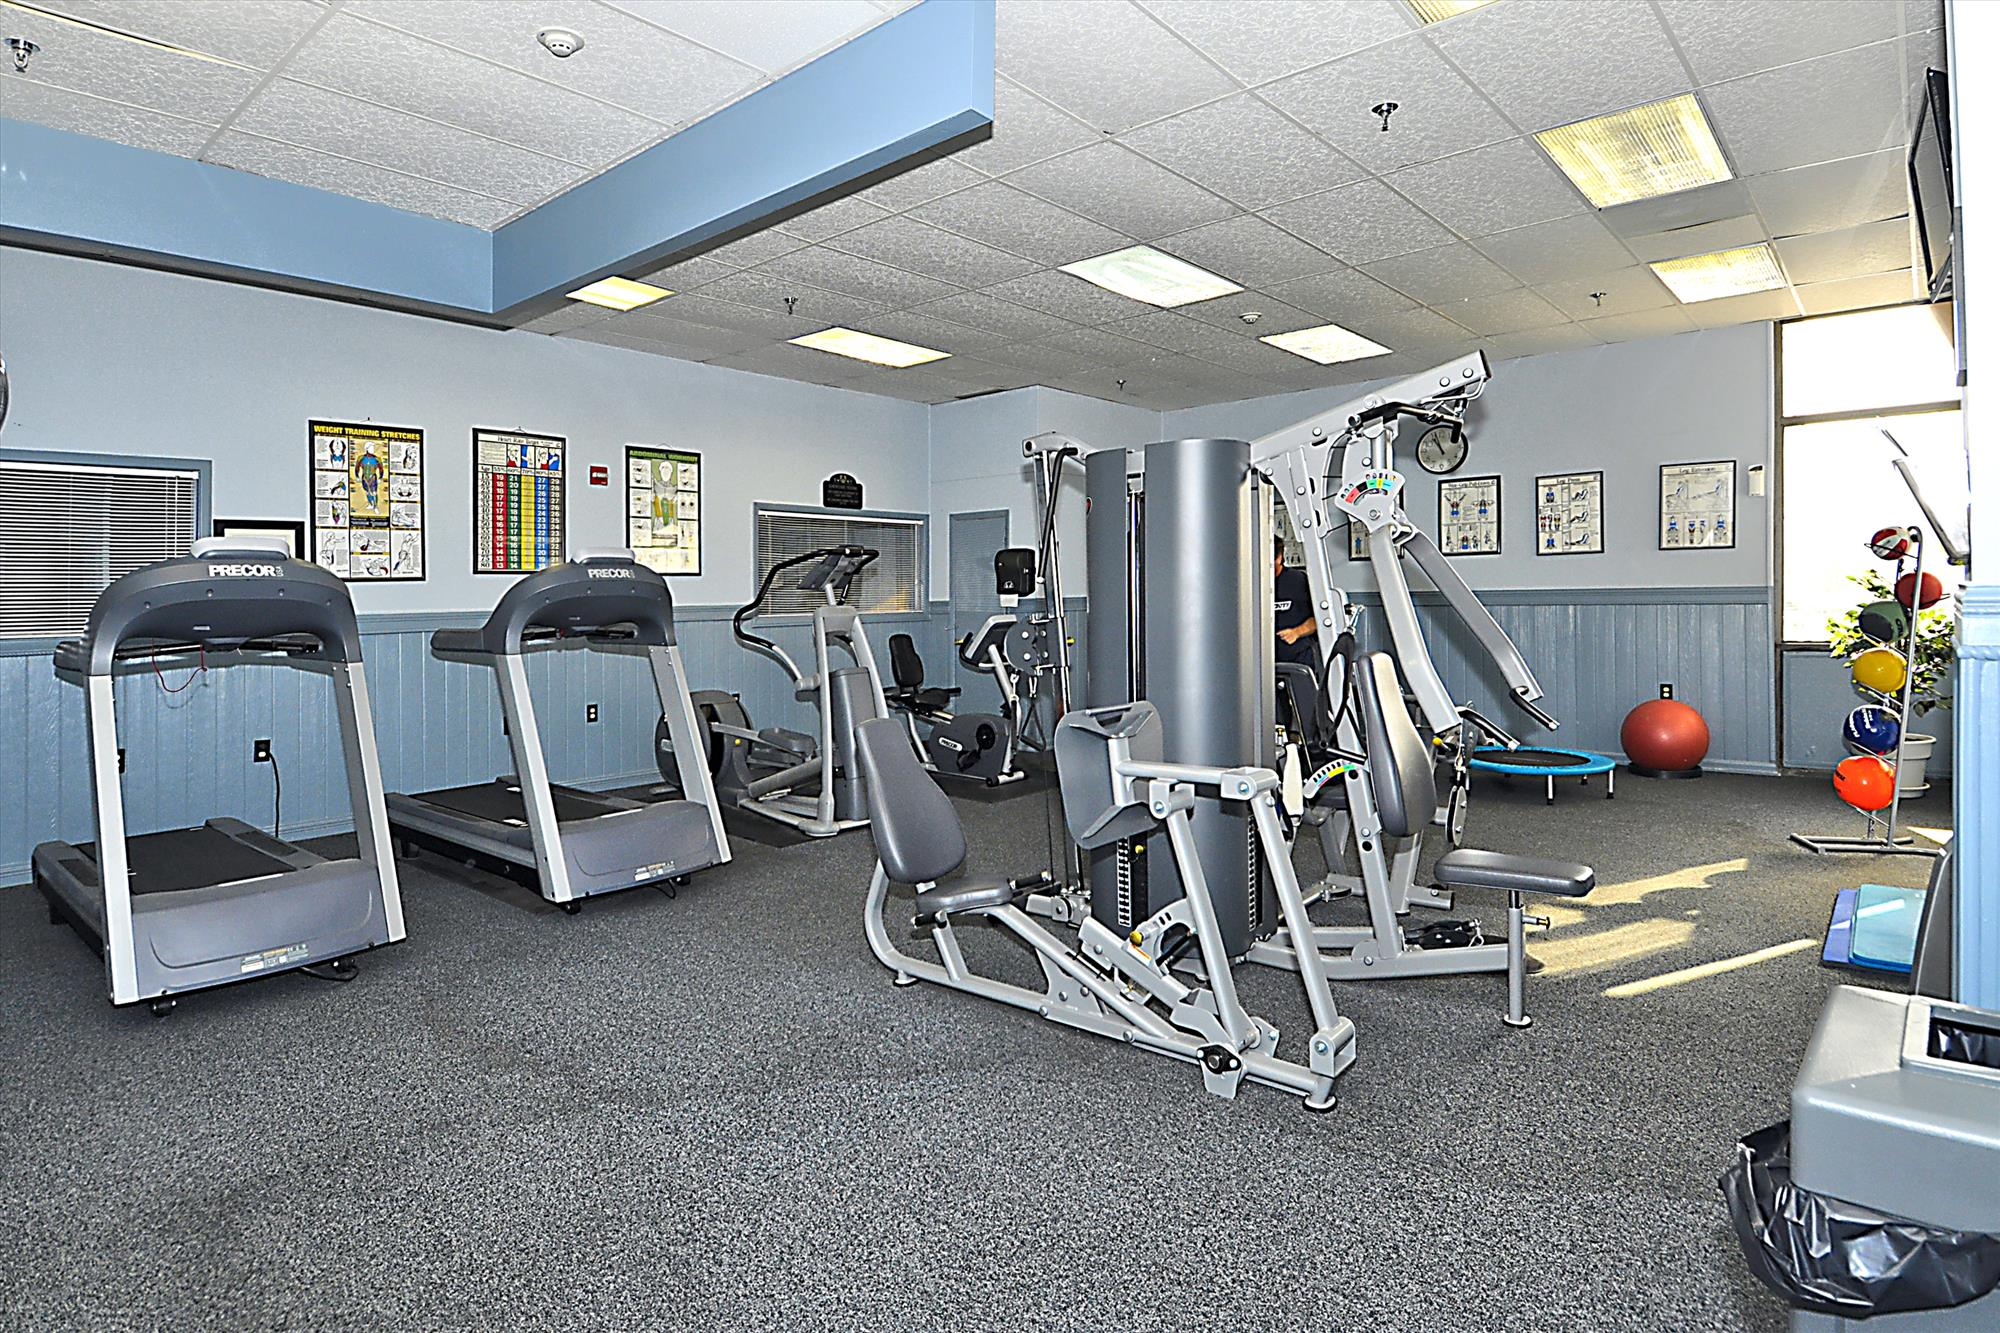 Amenity,Capri Fitness Room,